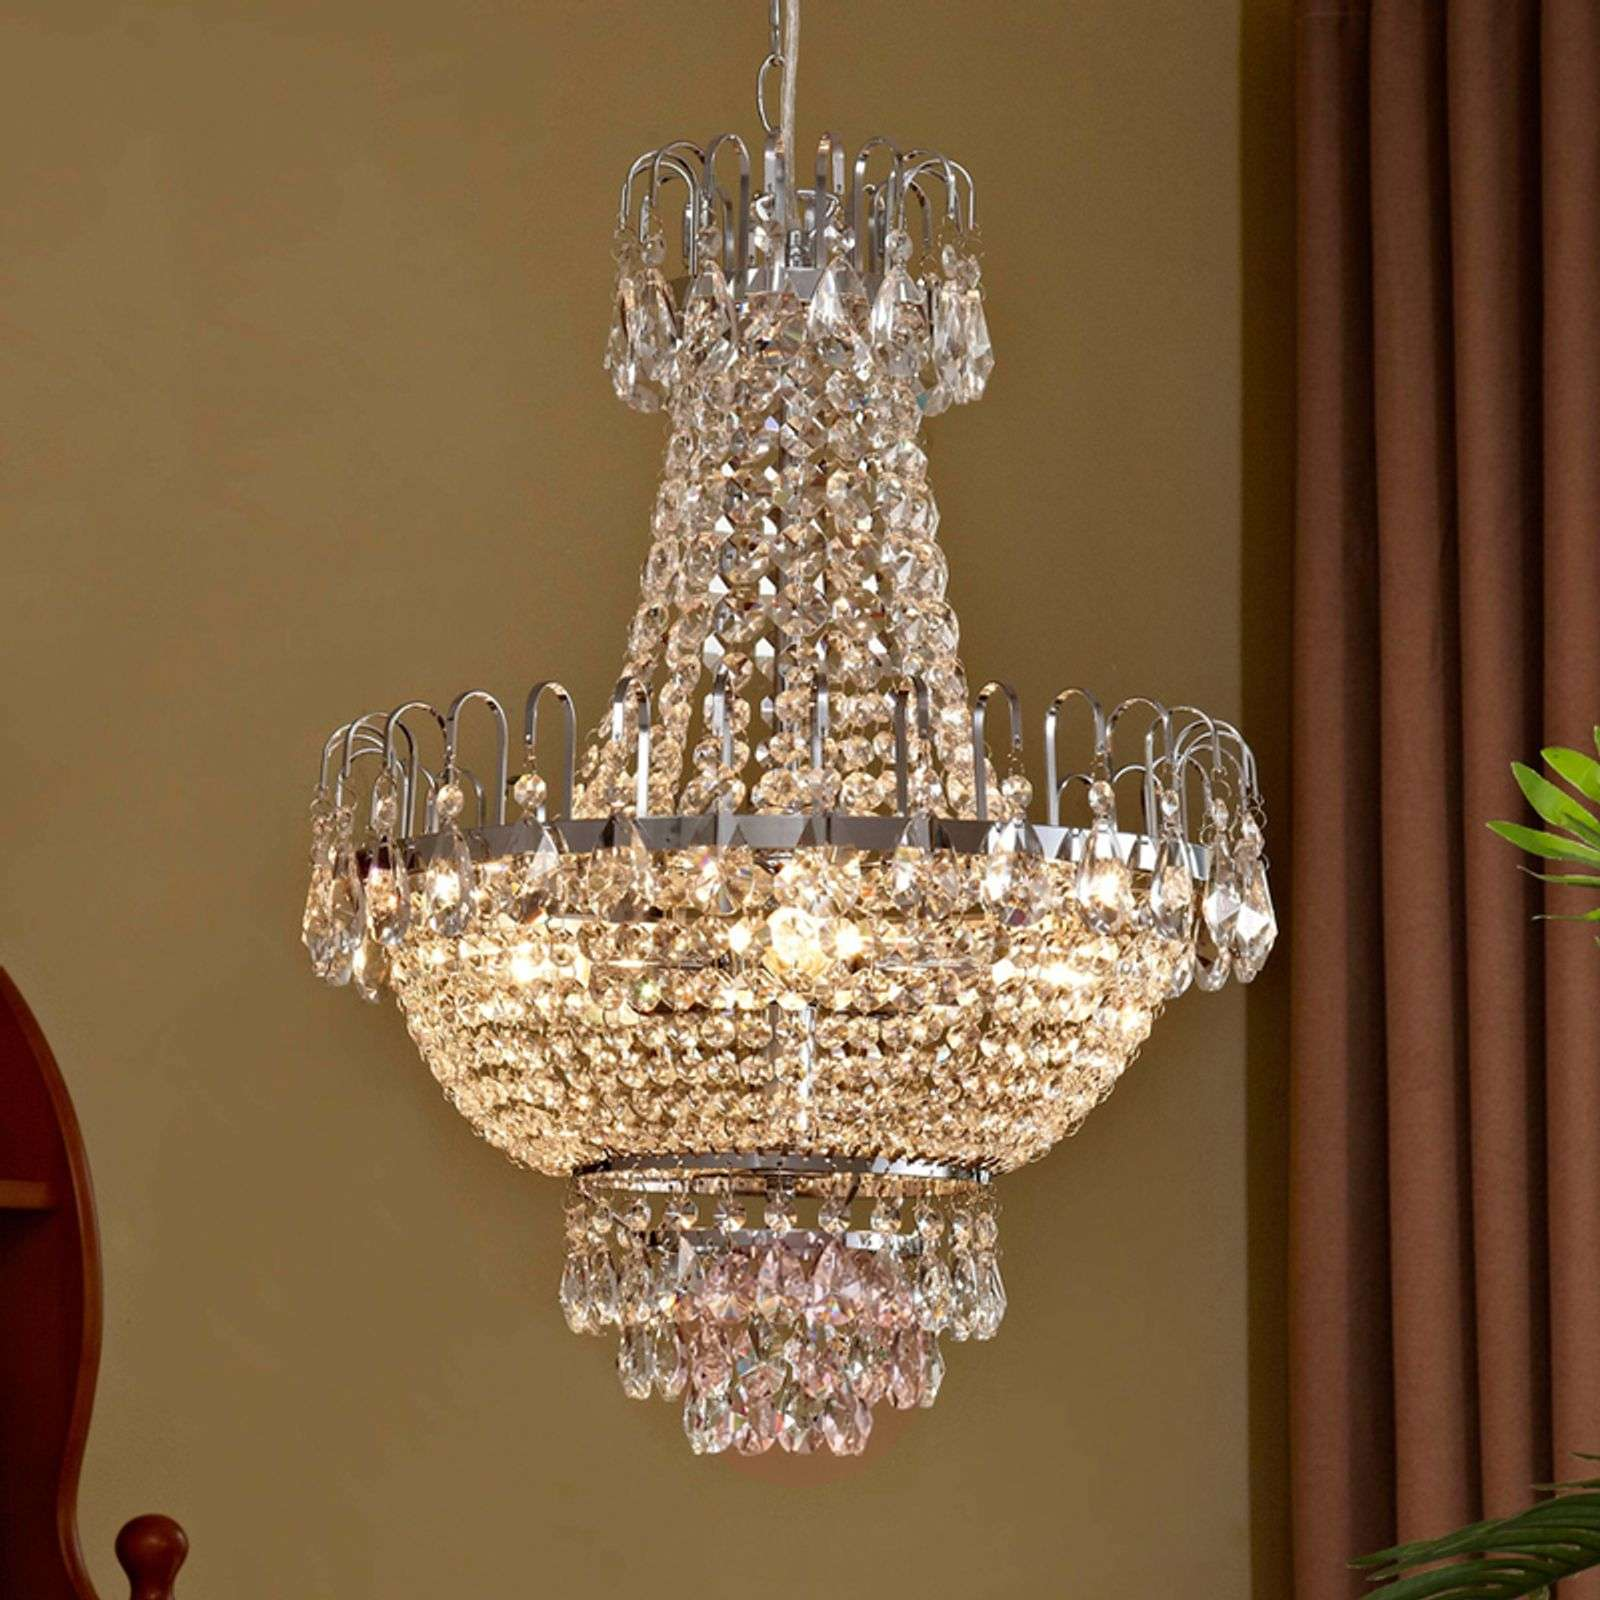 Suspension en cristal Casparia, chromé brillant-9620364-013